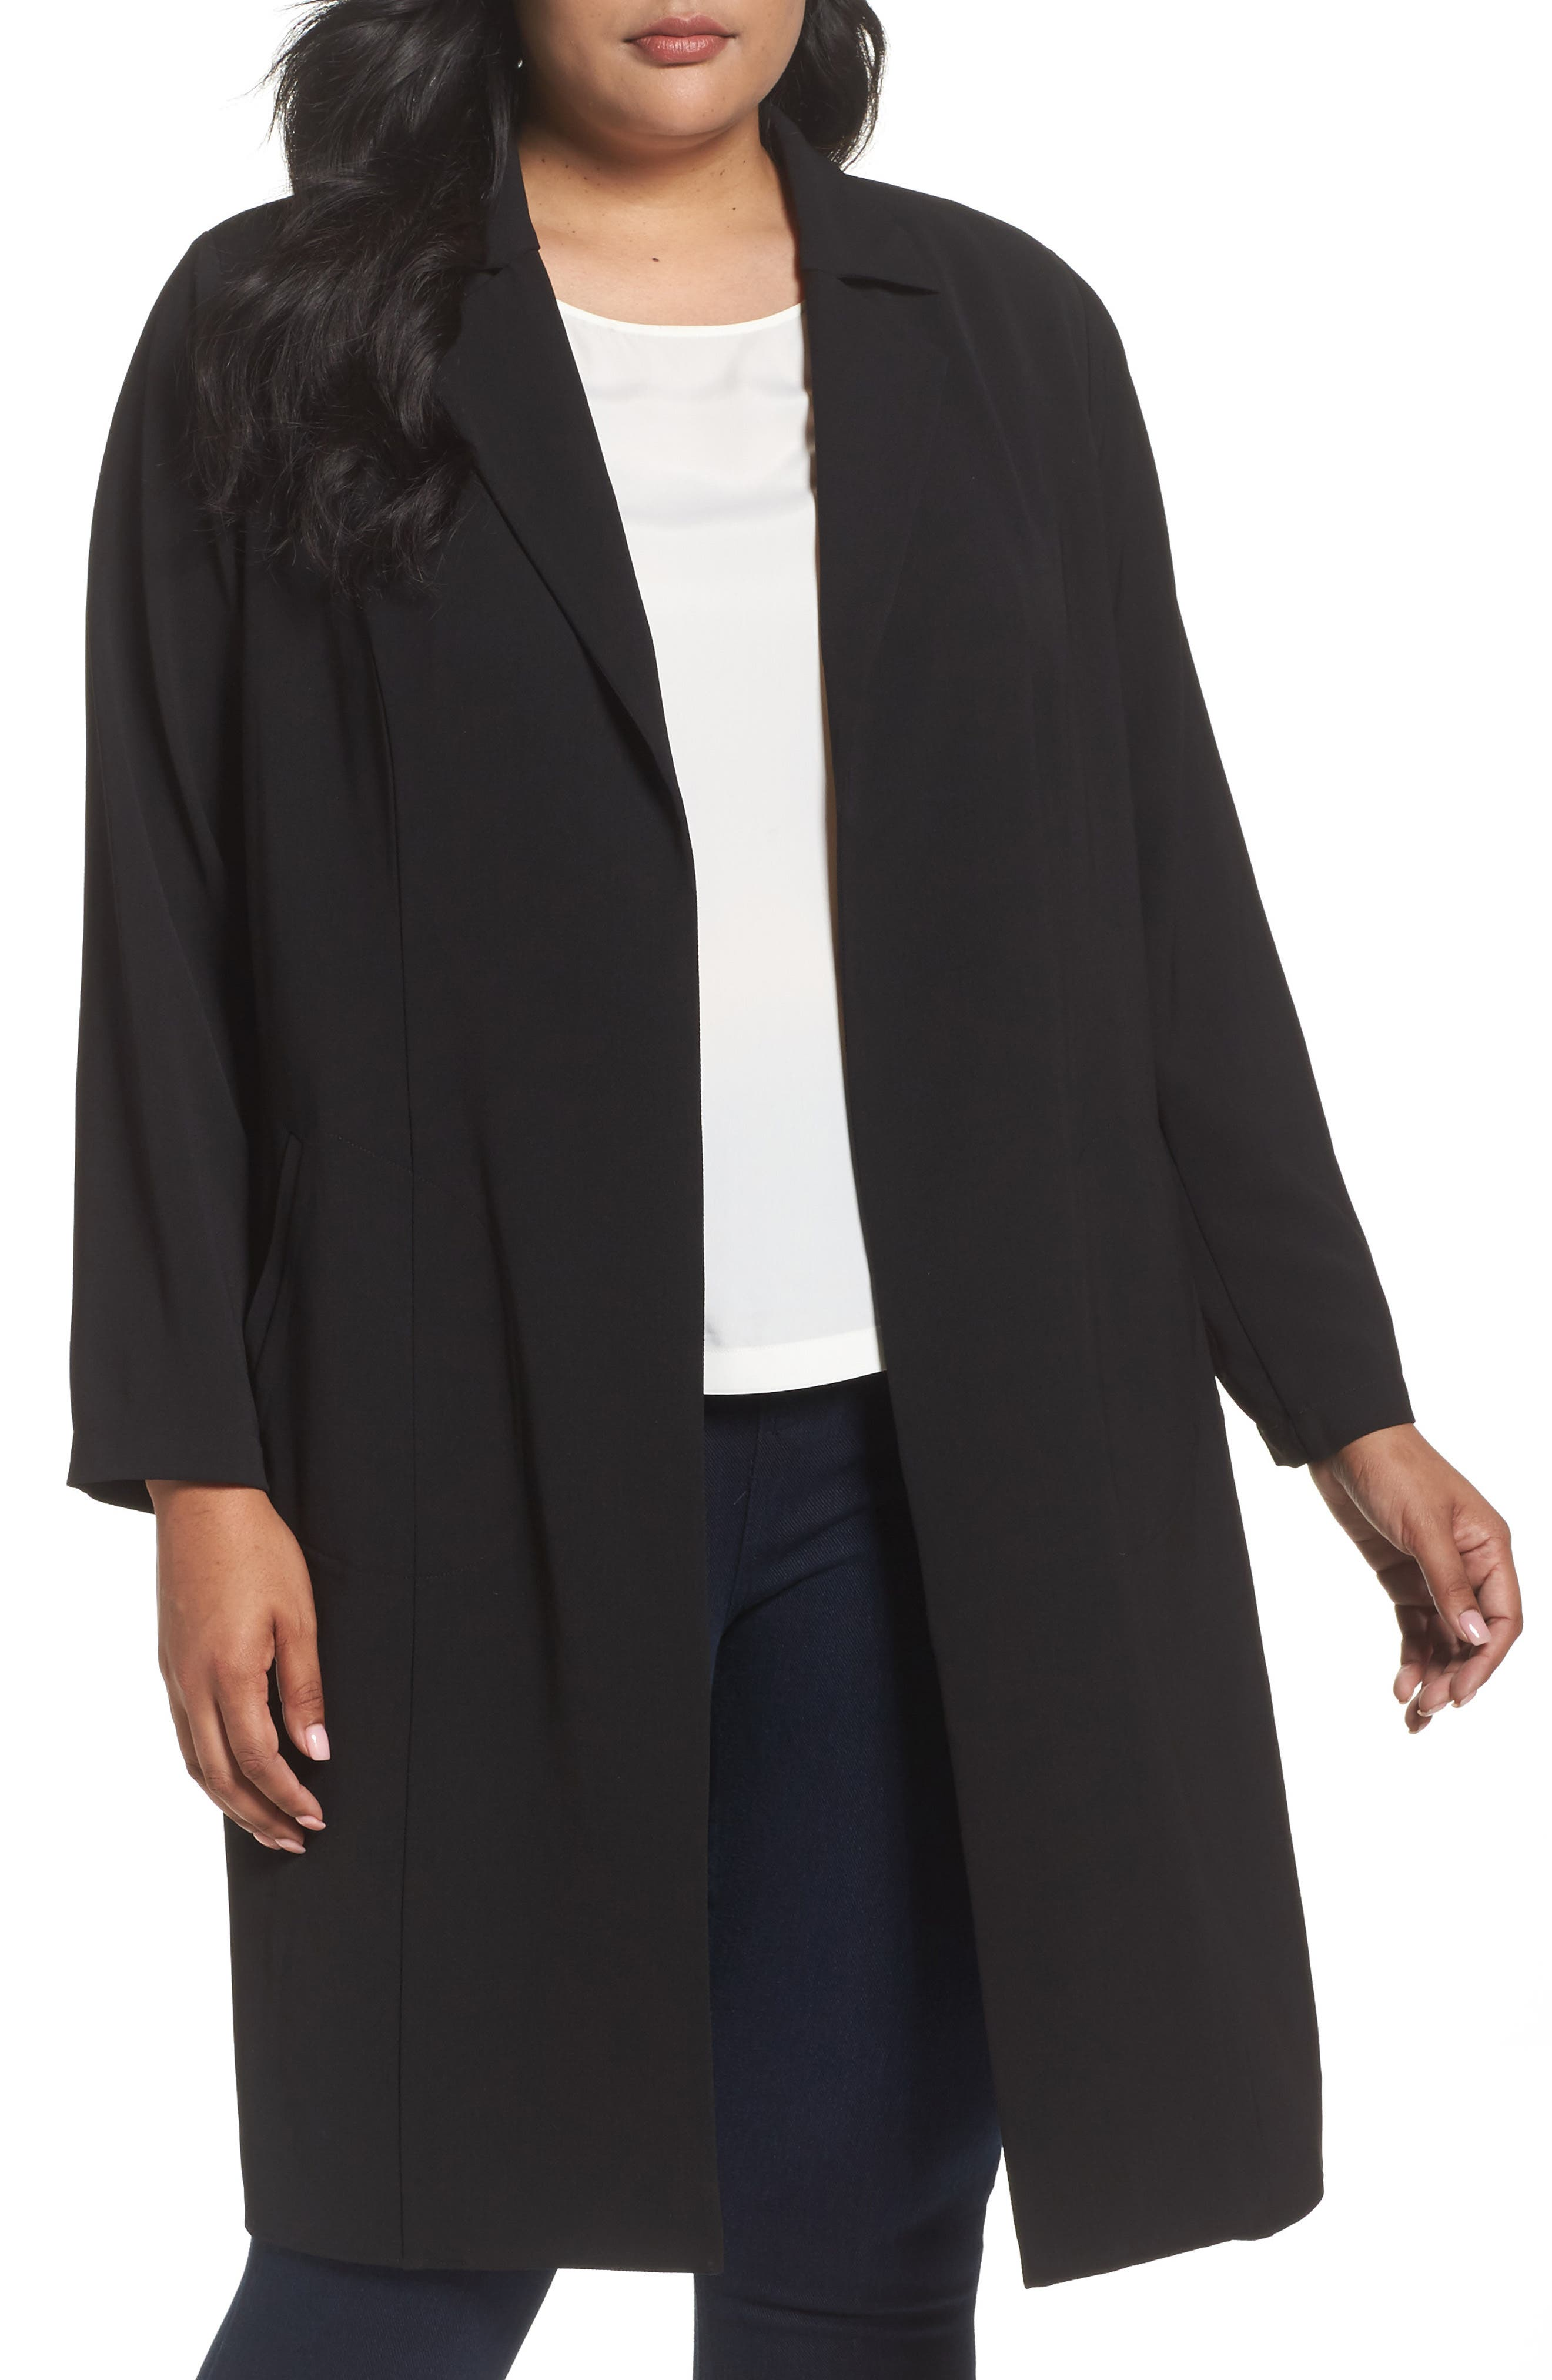 Vince Camuto Long Jacket (Plus Size)